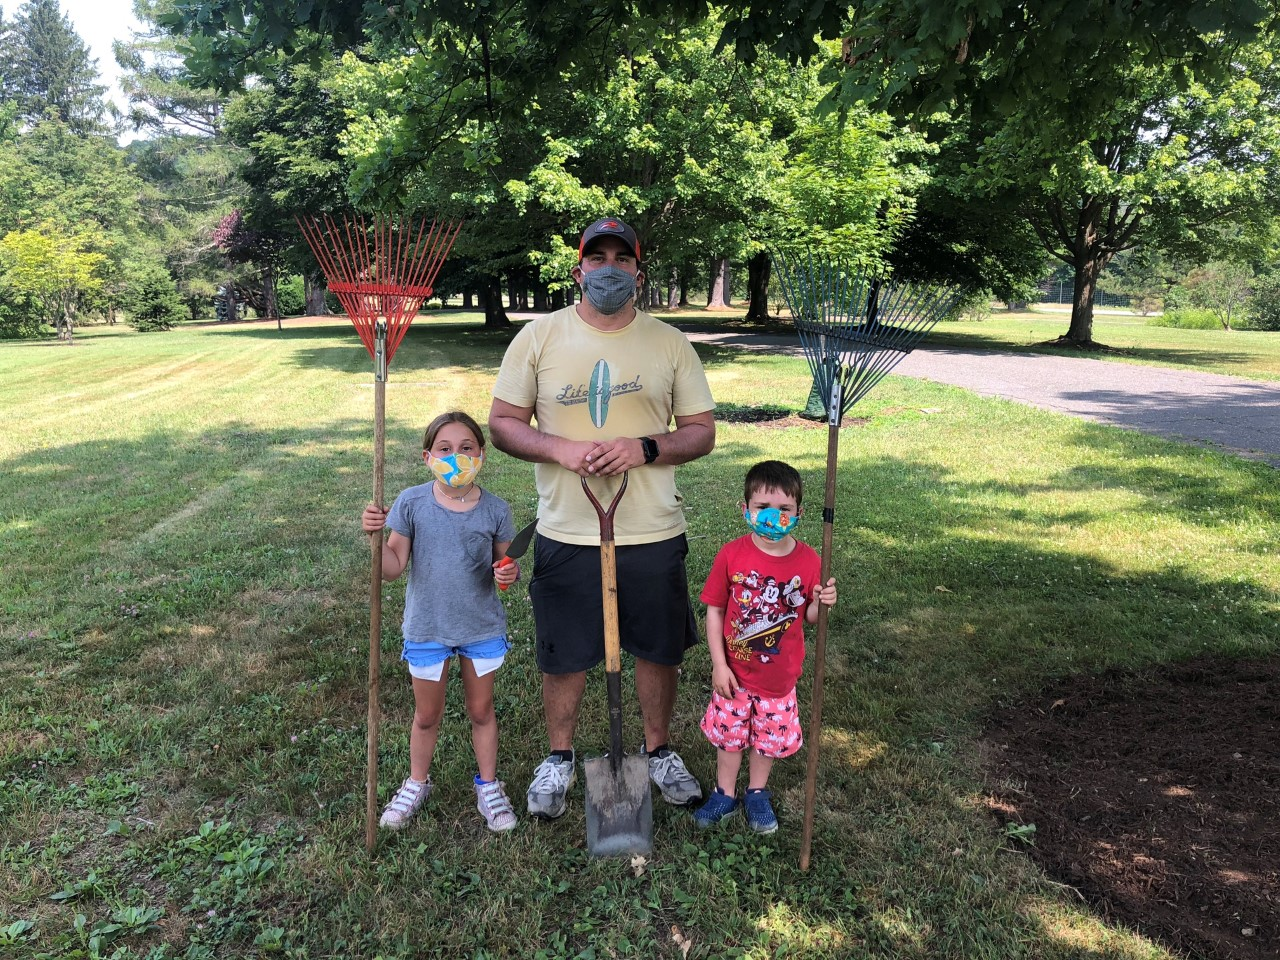 Pitch in for Parks 2021- Cleanup at Kensico Dam Plaza at Westchester Parks Foundation